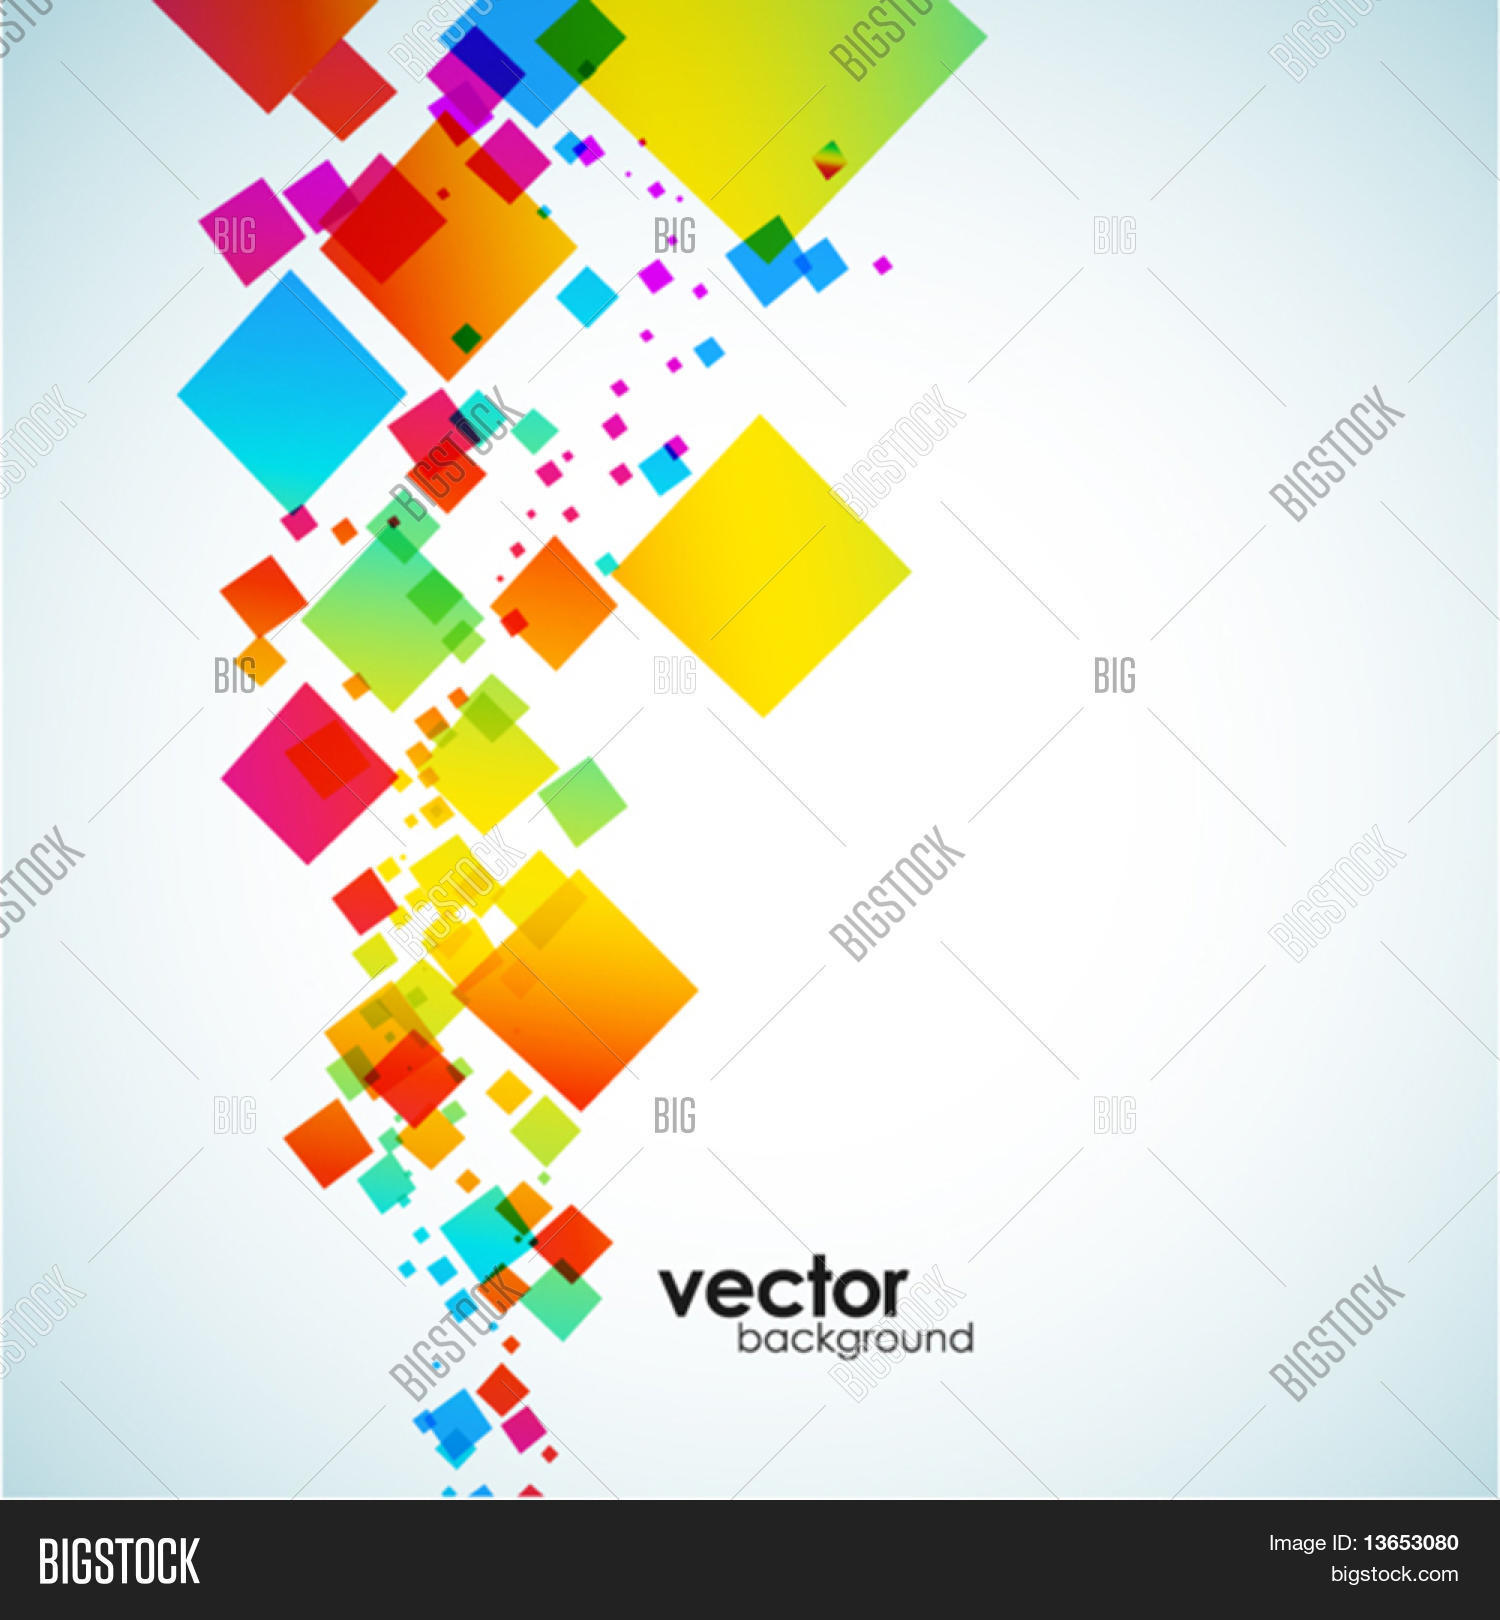 Abstract colorful background. Vector.